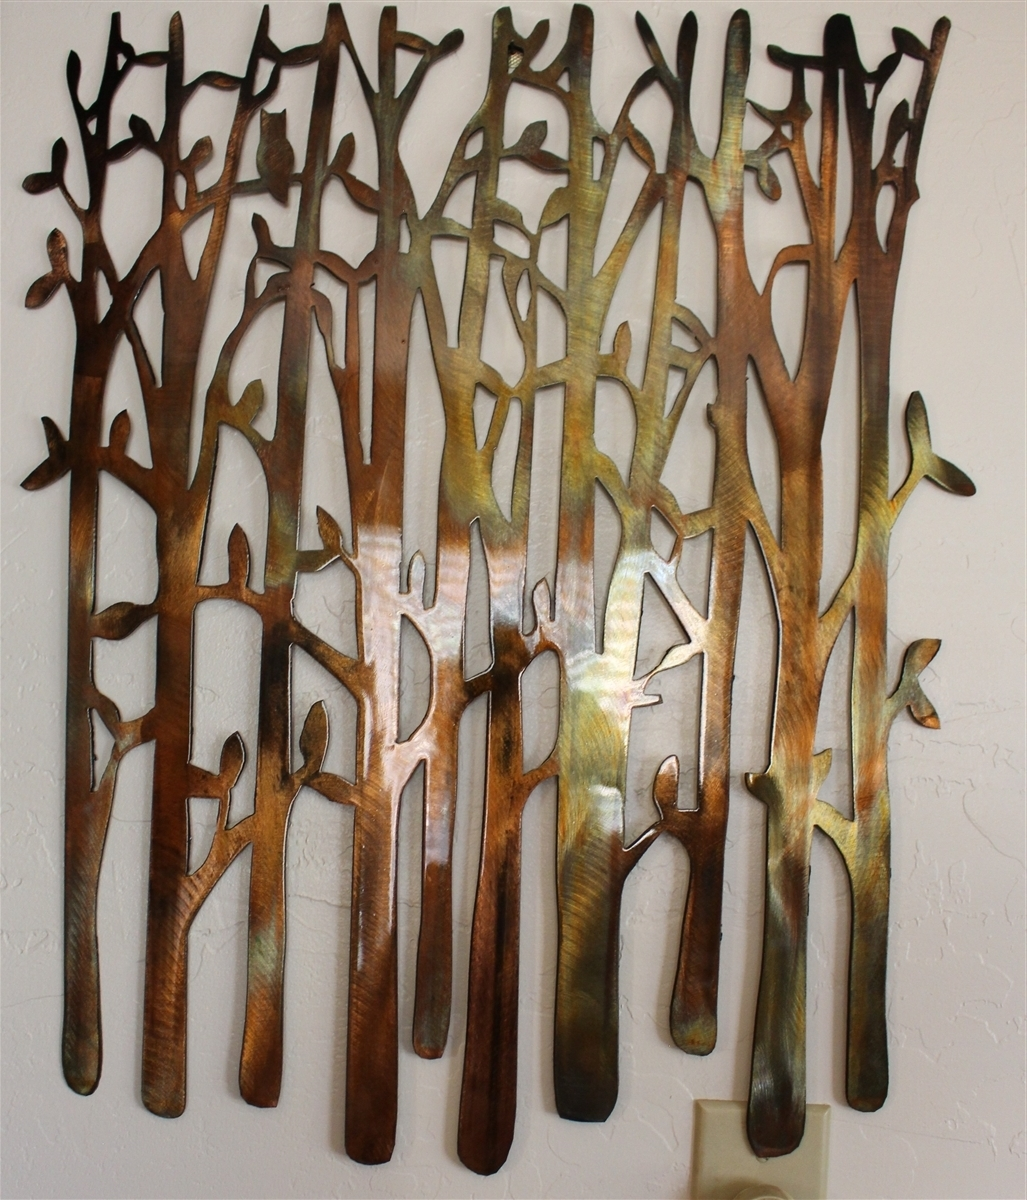 Birch Tree, Birch Tree Metal Art, Bamboo, Bird In The Trees, Bird With Newest Metal Wall Accents (View 8 of 15)